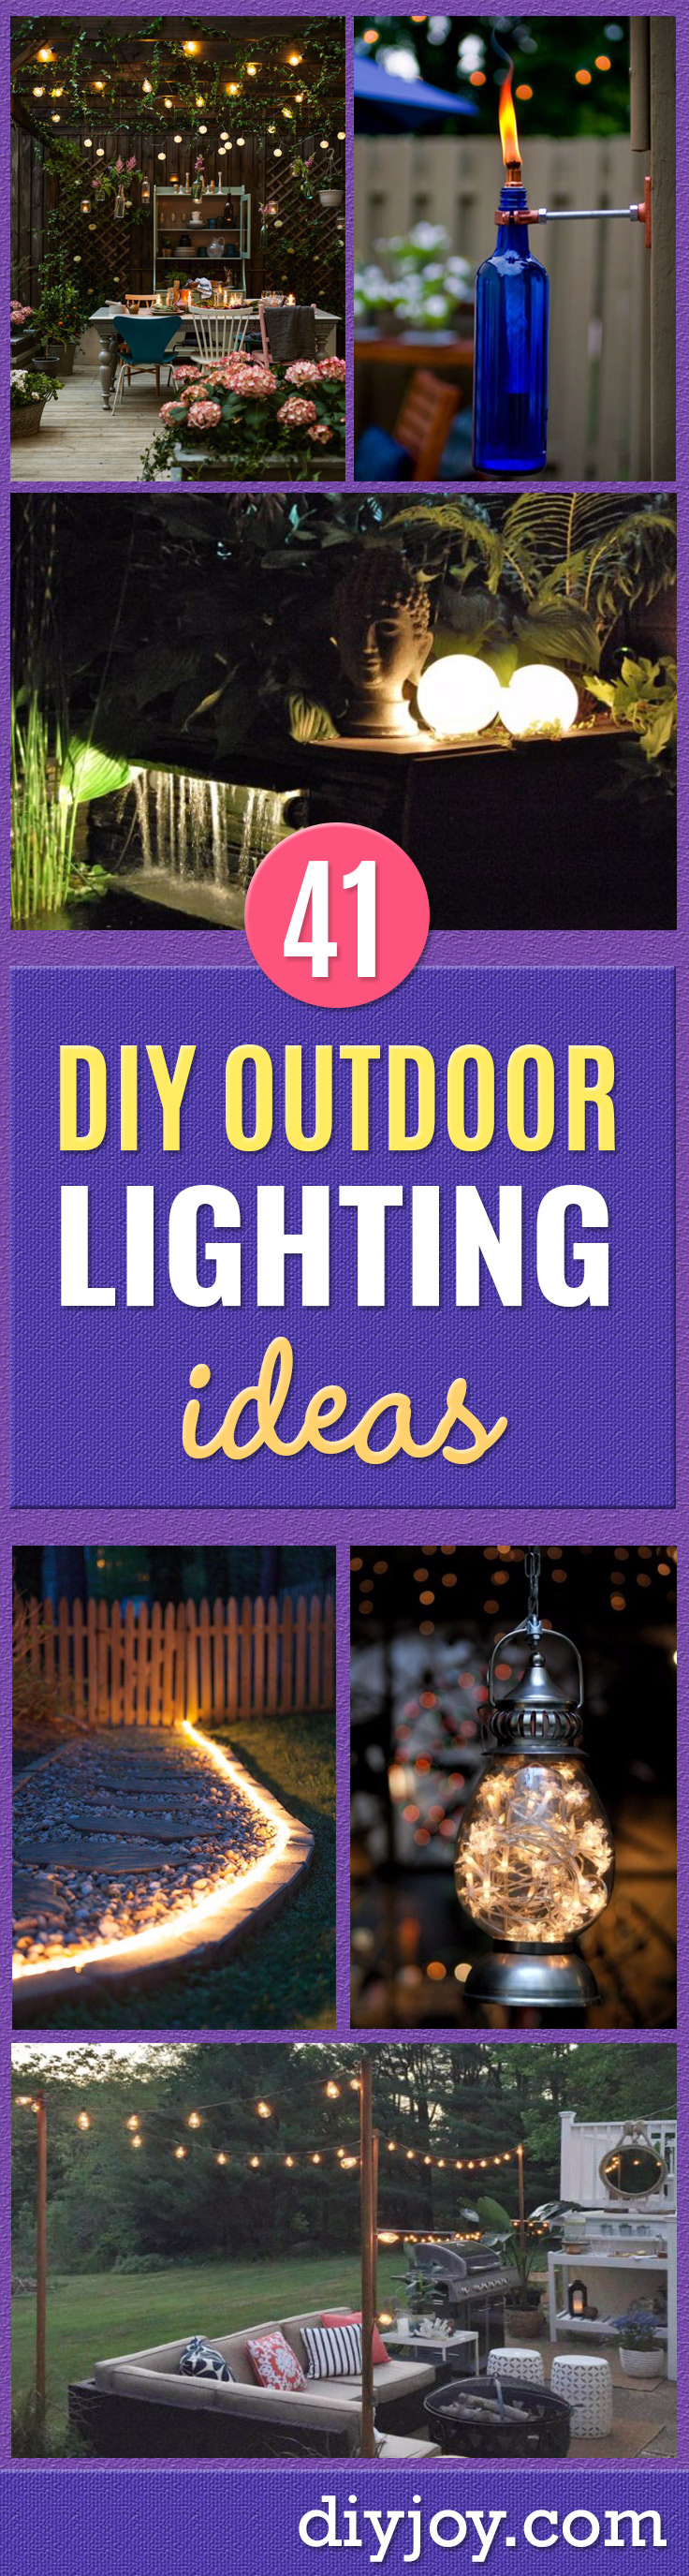 DIY Outdoor Lighting Ideas - Do It Yourself Lighting Ideas for the Backyard, Patio, Porch and Pool - Lights, Chandeliers, Lamps and String Lights for Your Outdoors - Dining Table and Chair Lighting, Overhead, Sconces and Weatherproof Projects - Walkway, Pool and Garden http://diyjoy.com/diy-outdoor-lighting-ideas